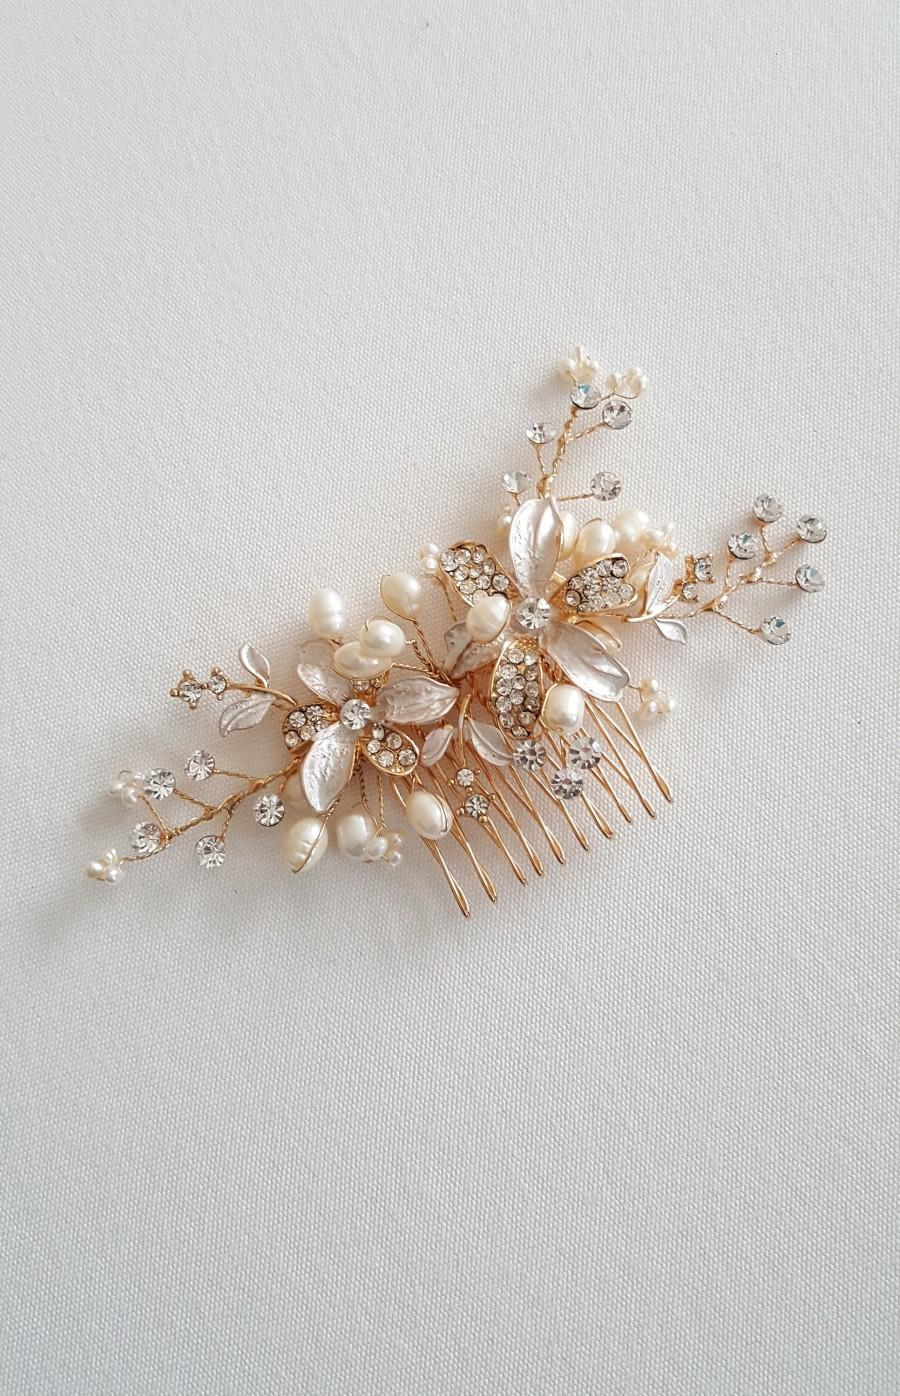 Wedding - Wedding Hair Comb, Pearl Wedding Headpiece, Crystal Pearl Bridal Comb, Gold Bridal Headpiece, Rose Gold Pearl Bridal Comb